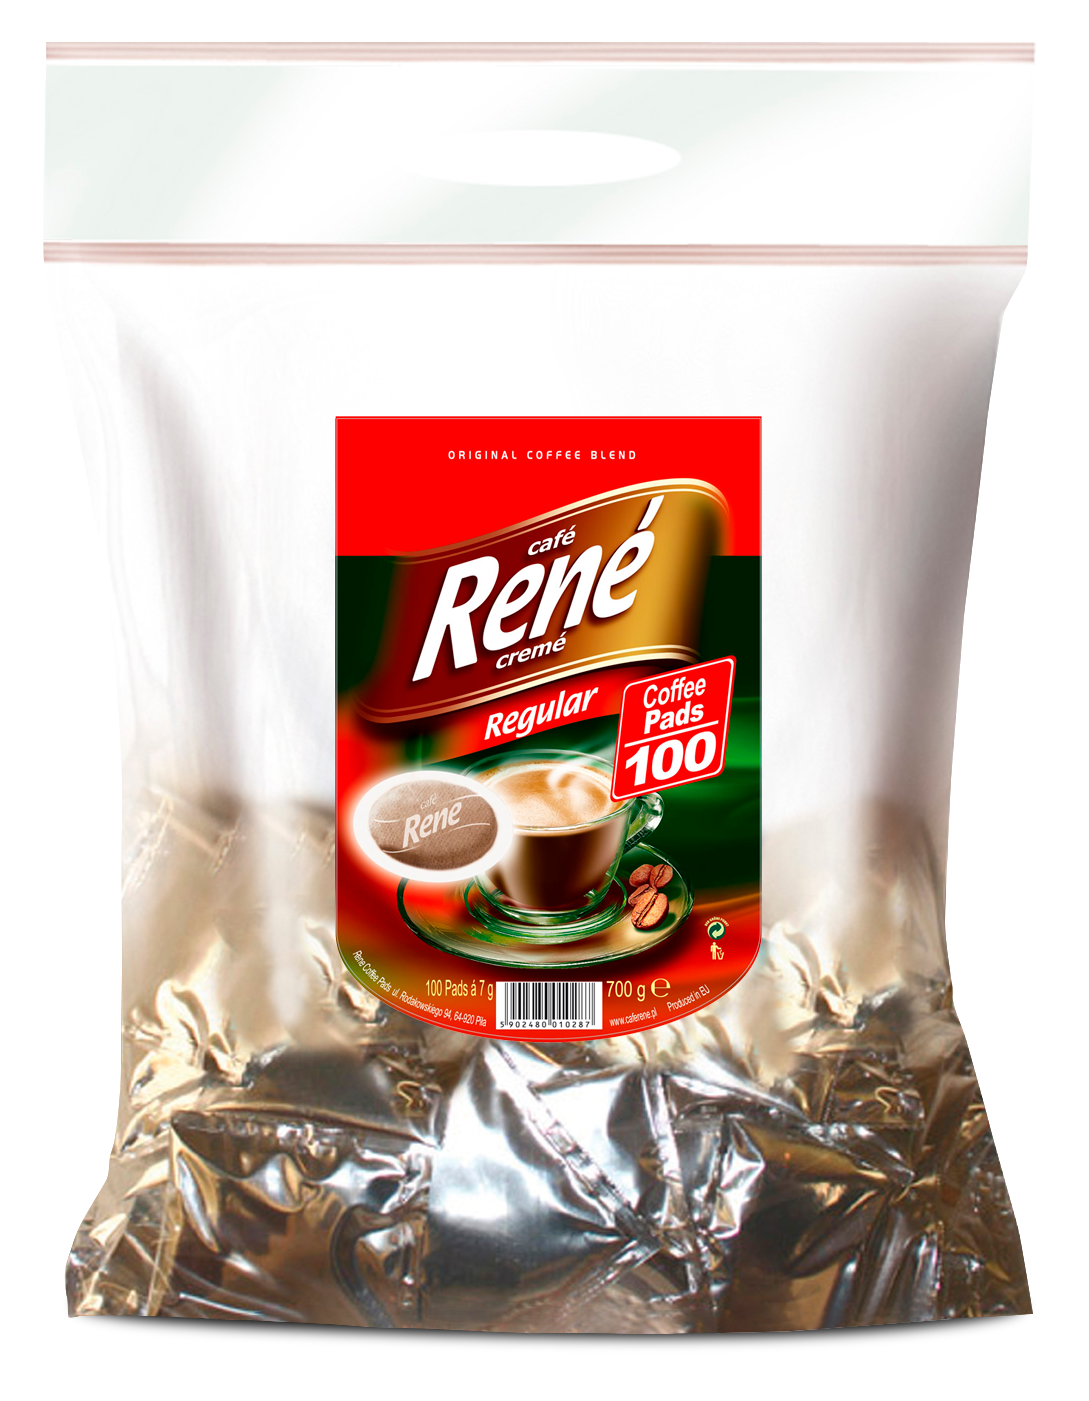 Coffee Pads Regular 100 - Rene Cafe